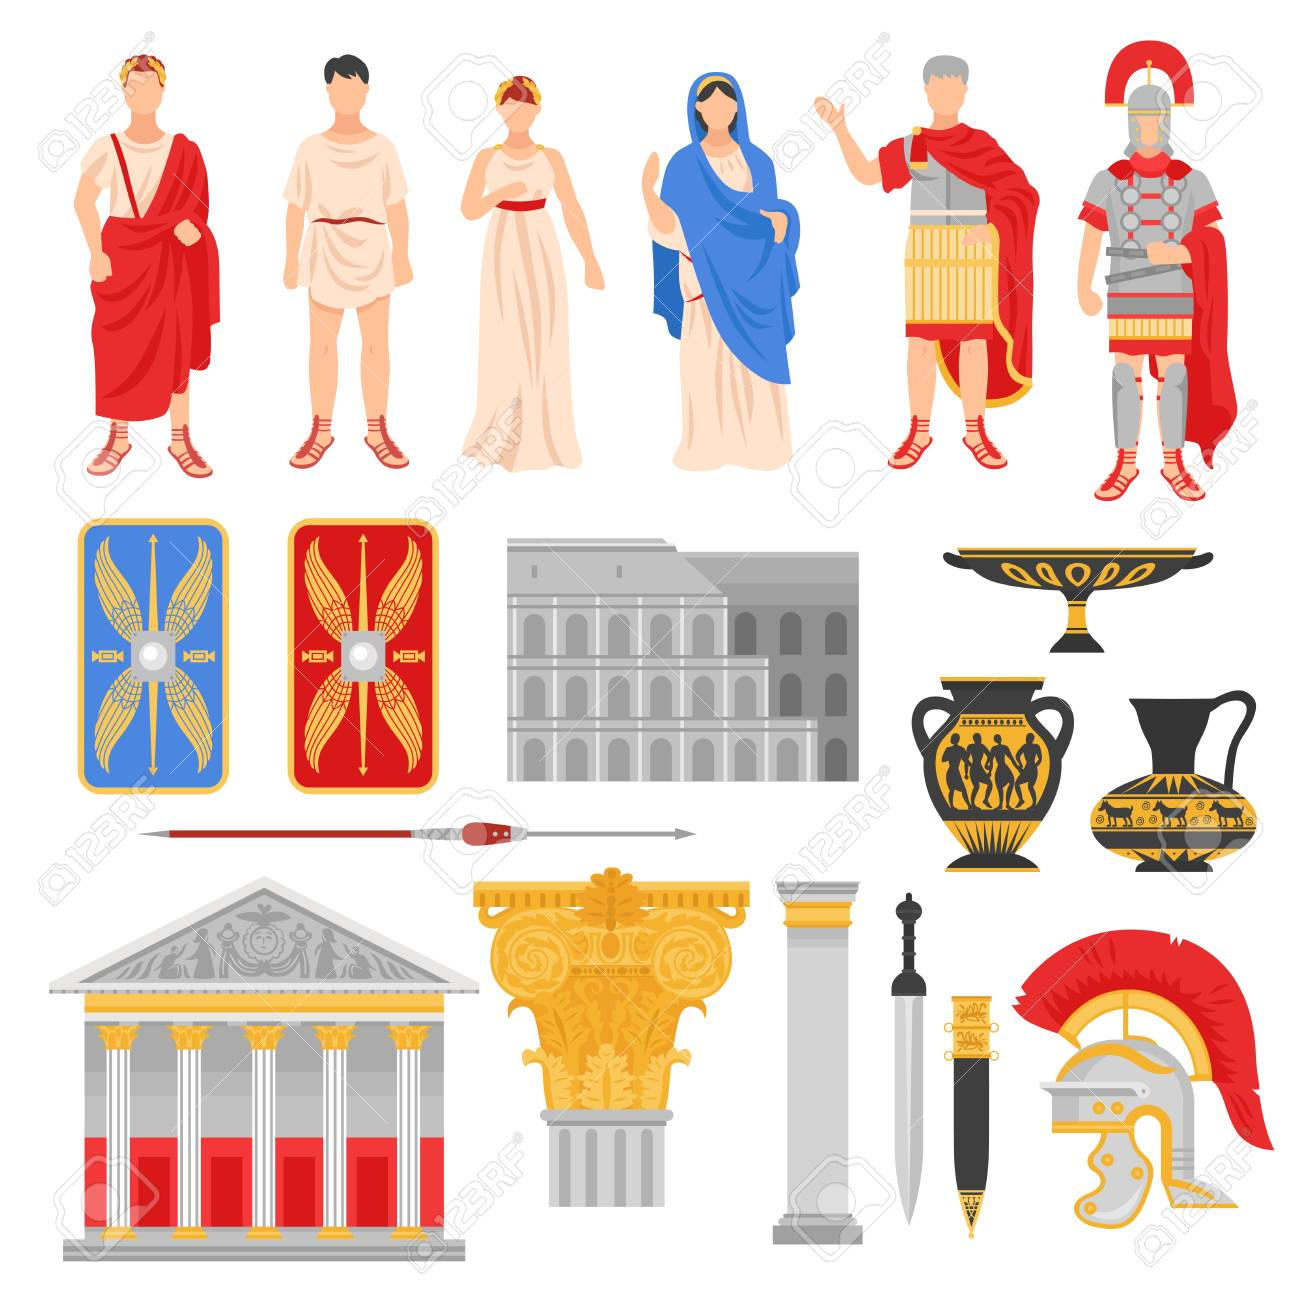 Ancient rome empire set of isolated flat images with pantheons legionnaire outfit weapons and human characters vector illustration - 96921128